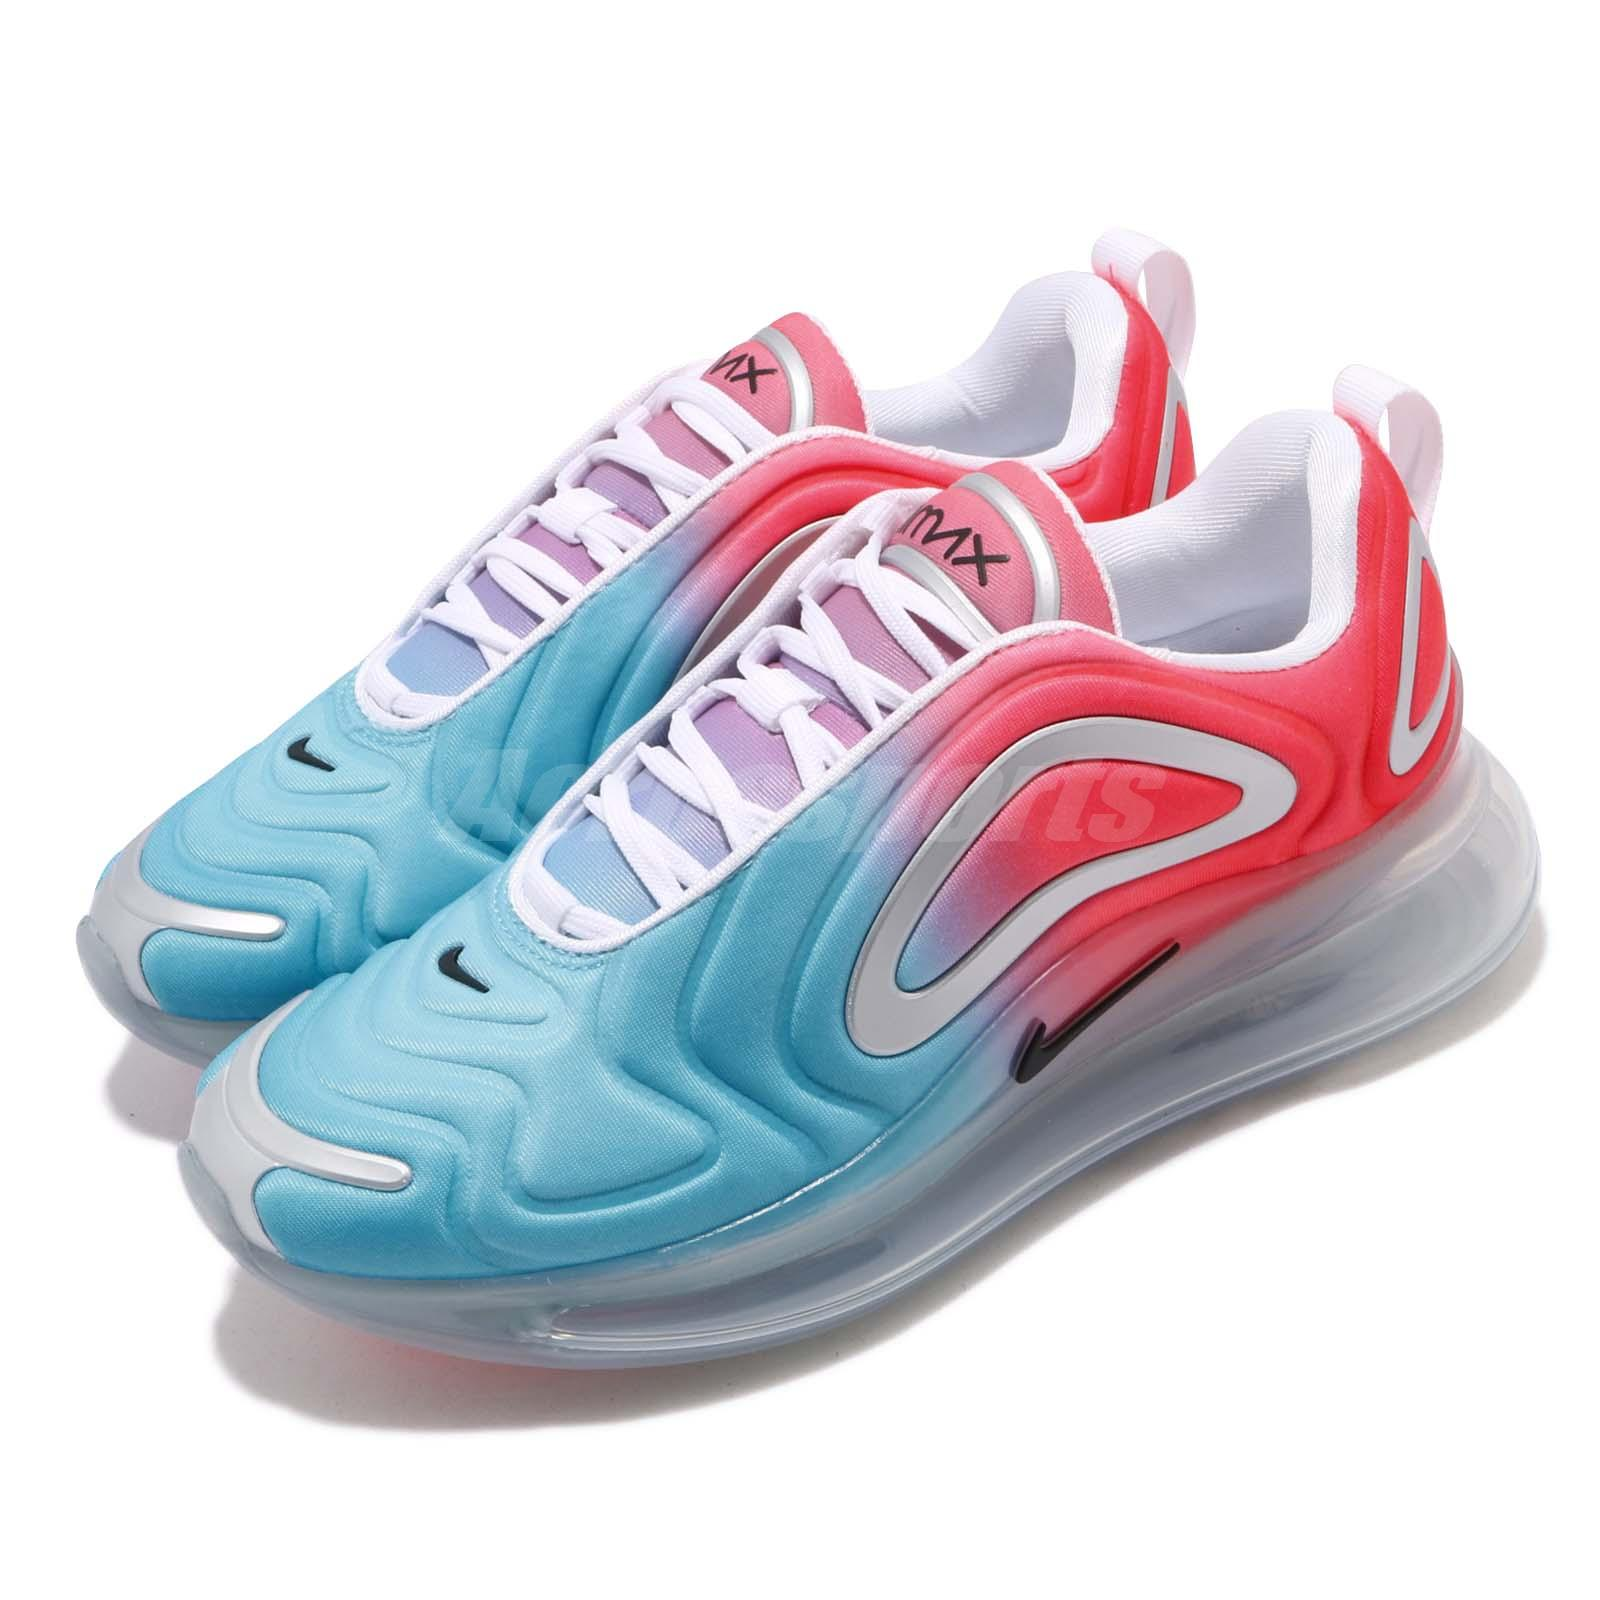 Details about Nike Wmns Air Max 720 Pink Sea Blue Women Running Shoes Sneakers AR9293 600